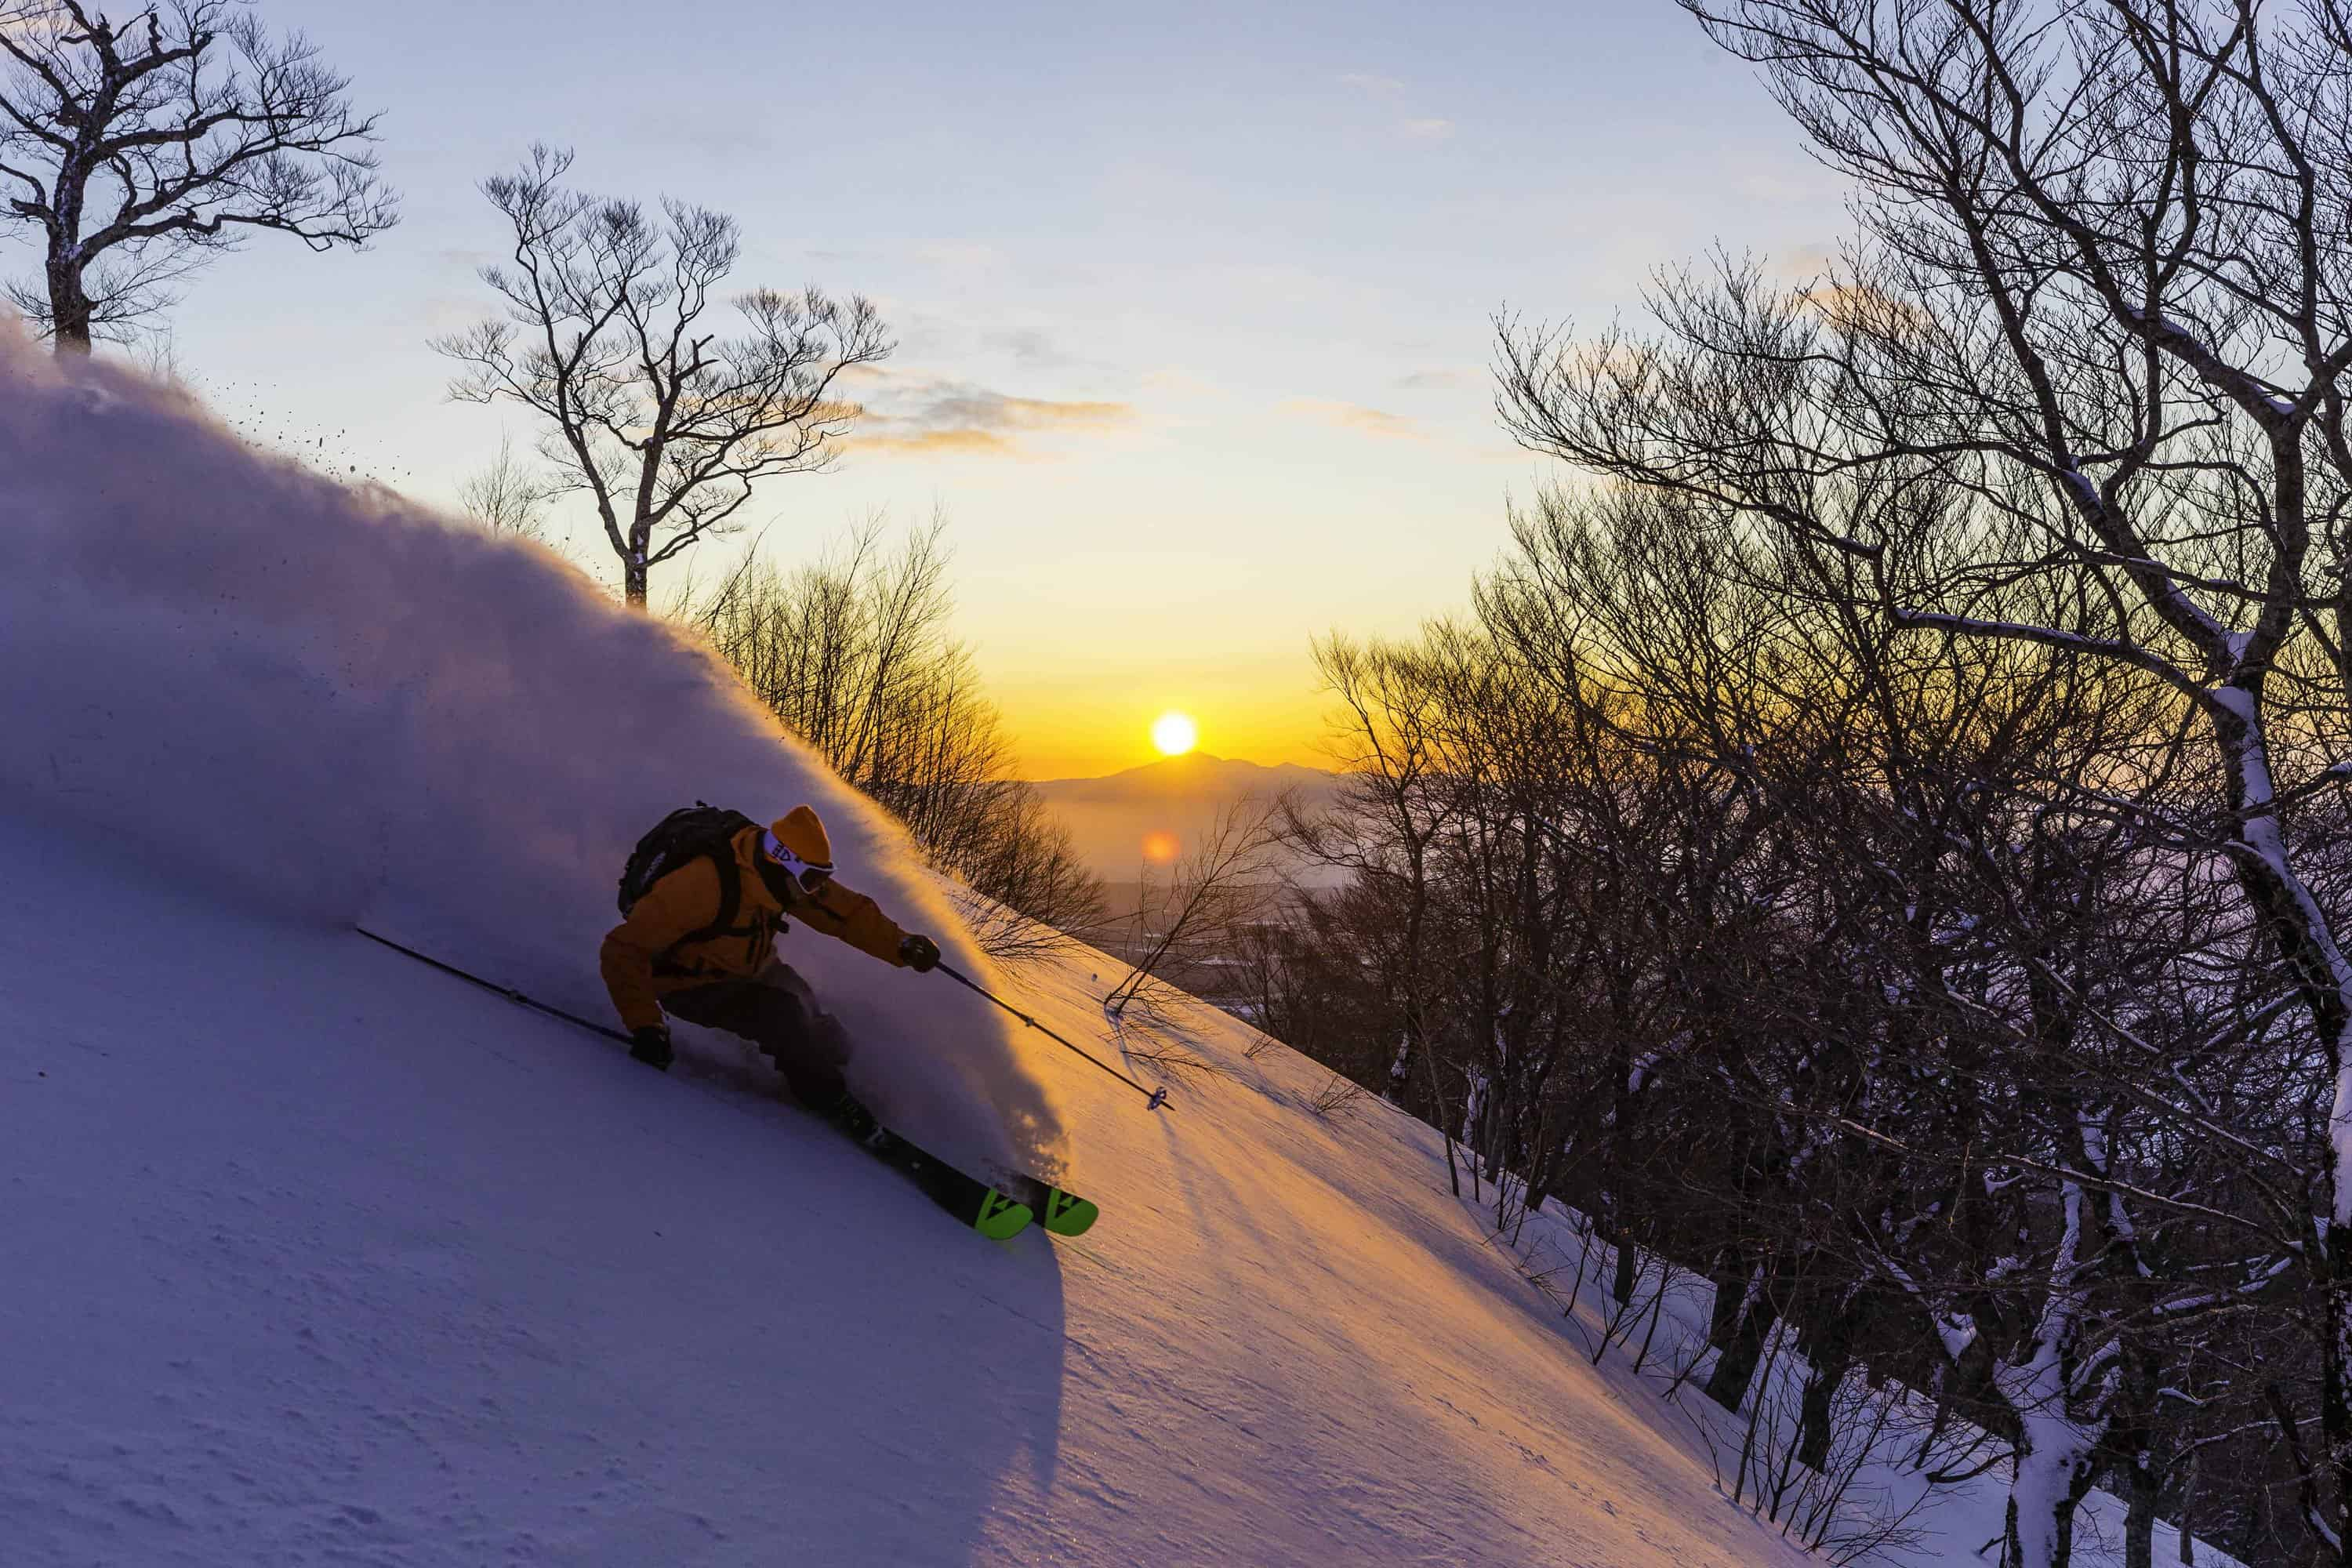 Sunrise + powder skiing = heaven? Photo:: Grant Gunderson